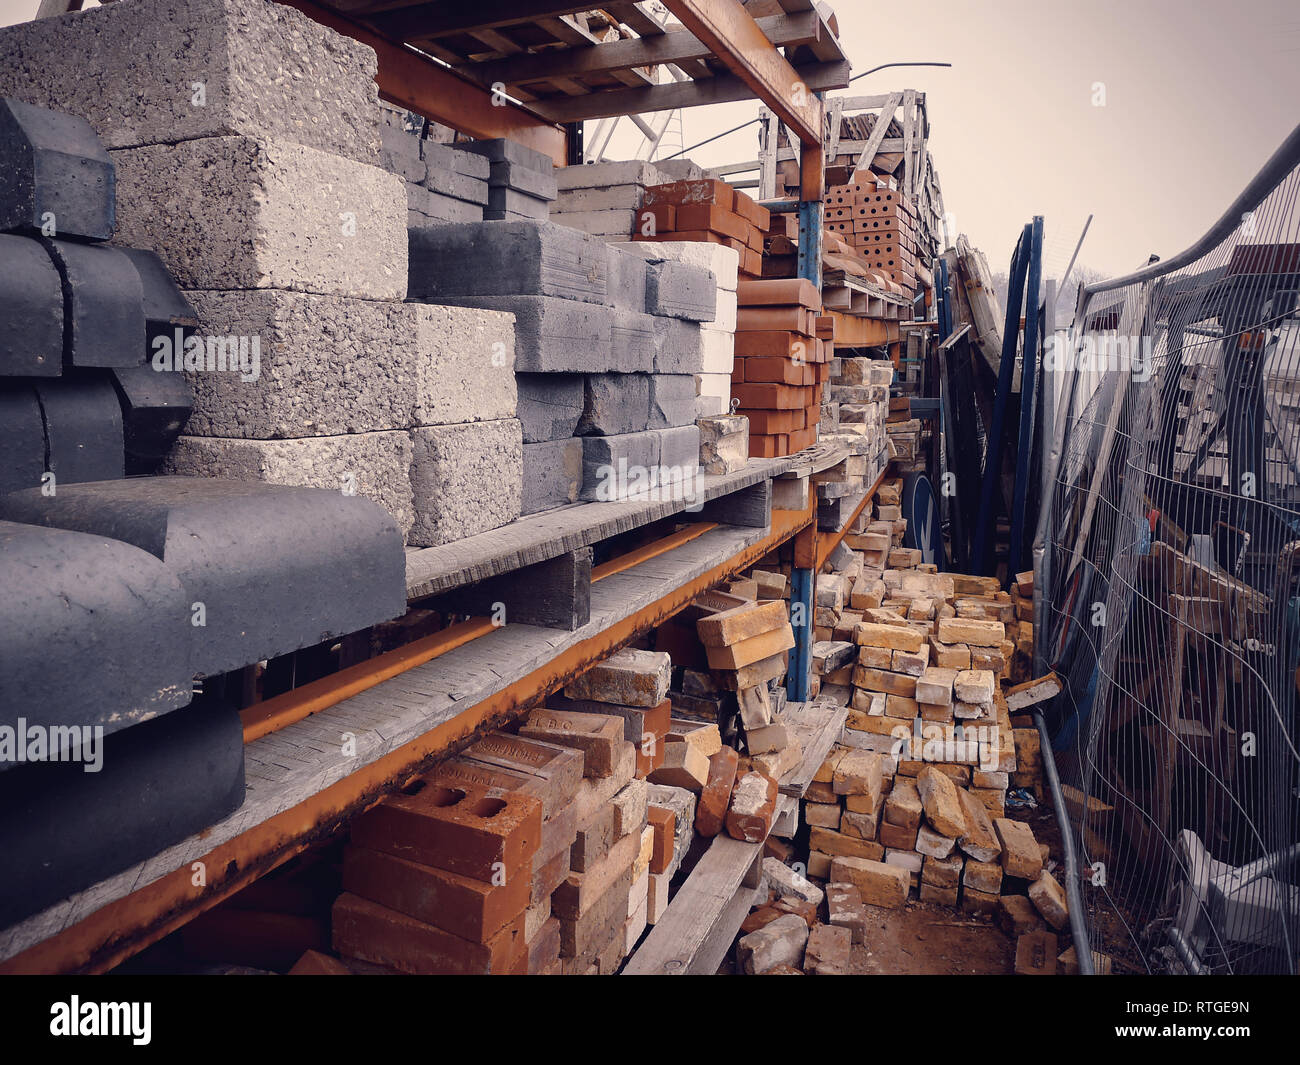 Stacks of various reclaimed bricks at a salvage yard in the